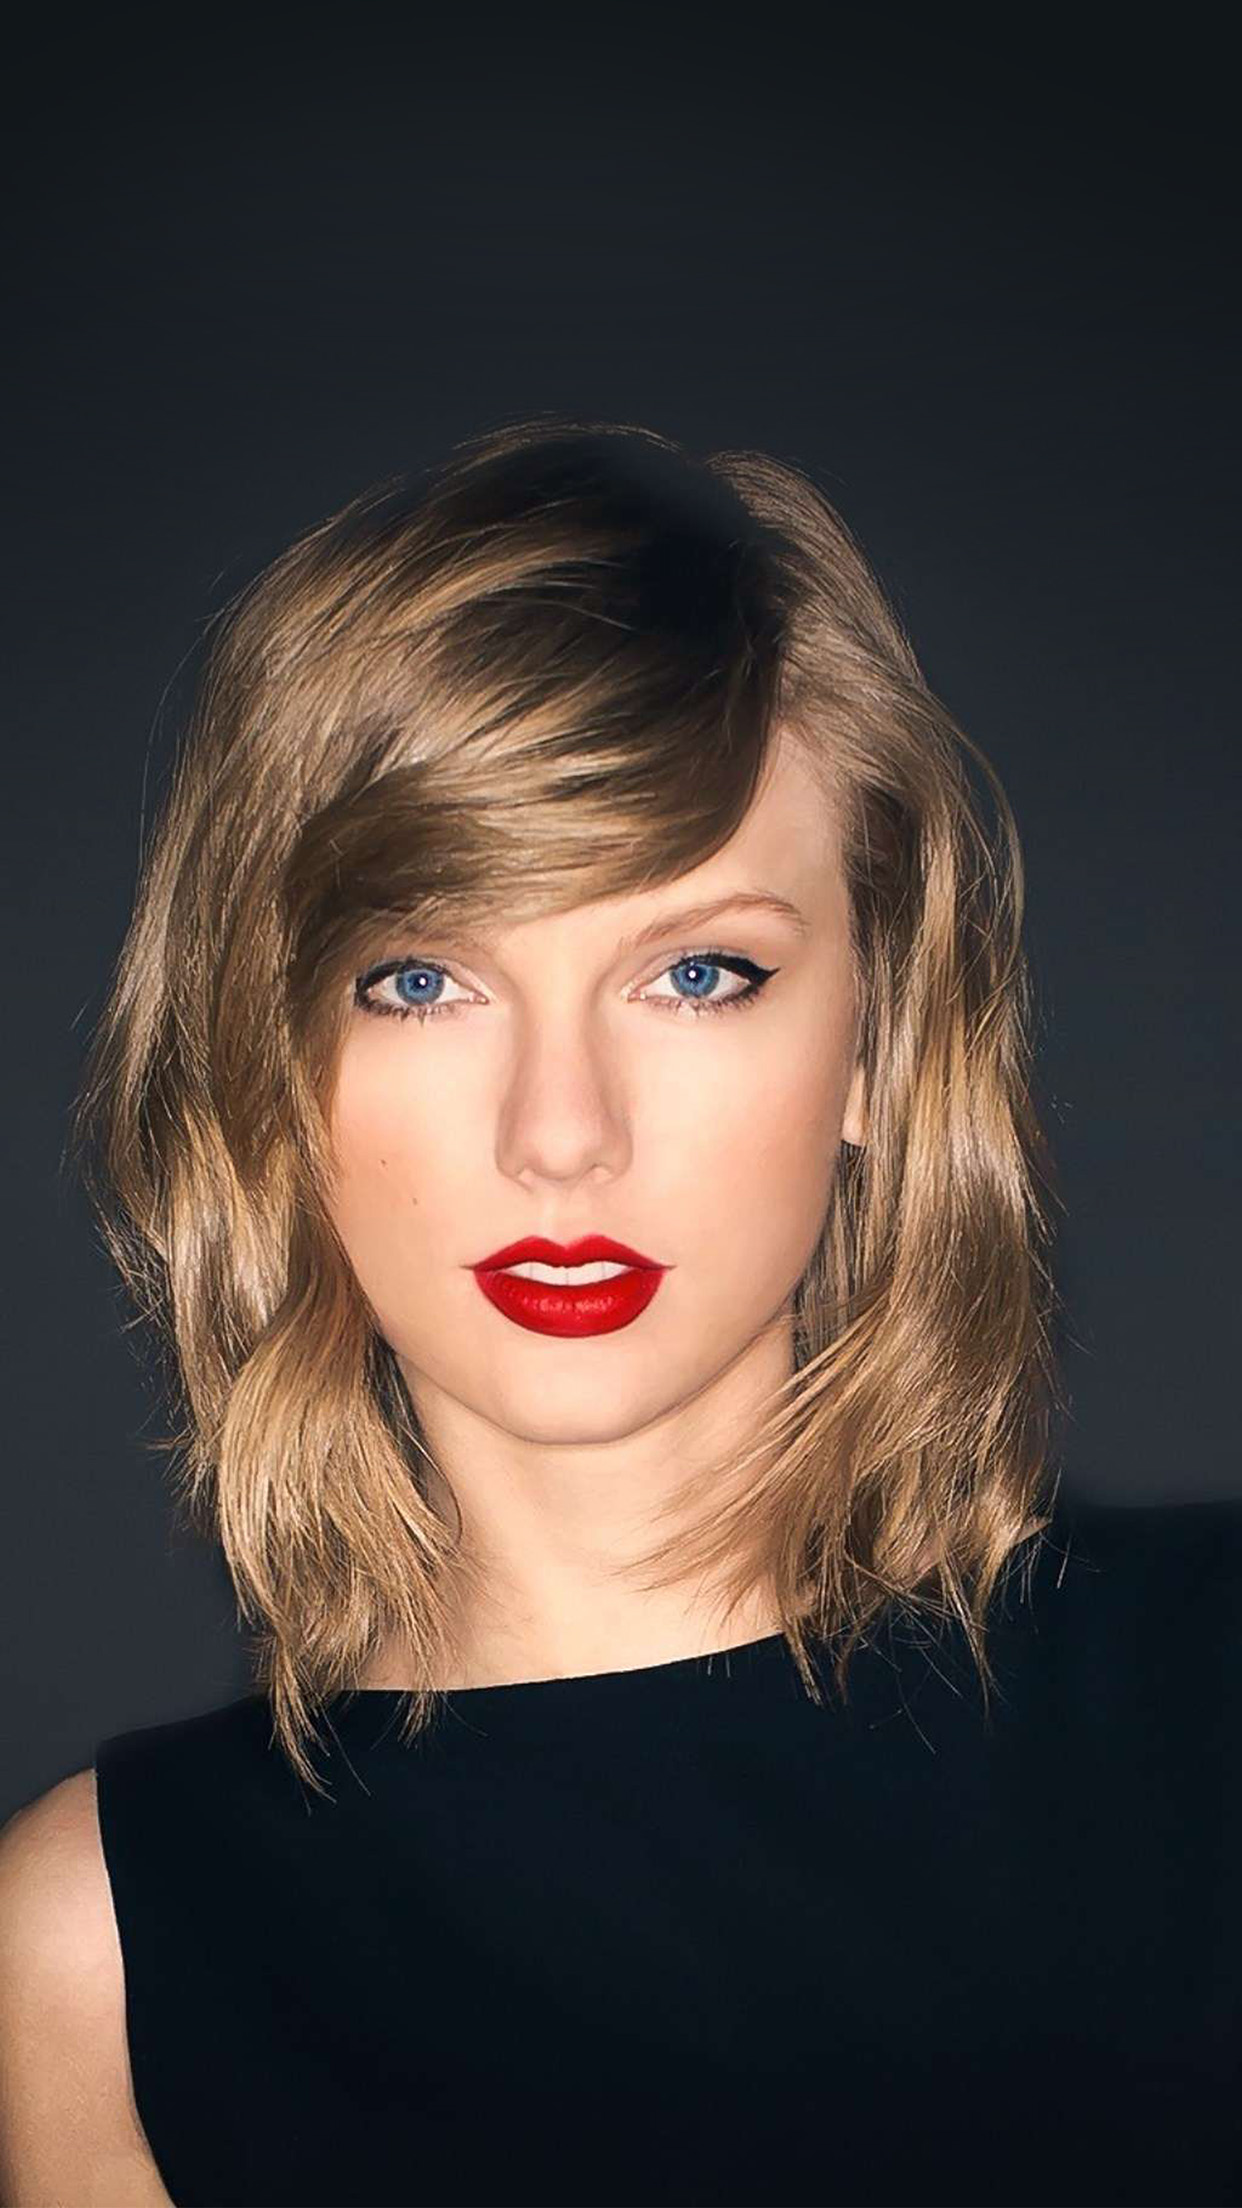 Taylor Swift Artist Celebrity Girl #iPhone #6 #plus # ...